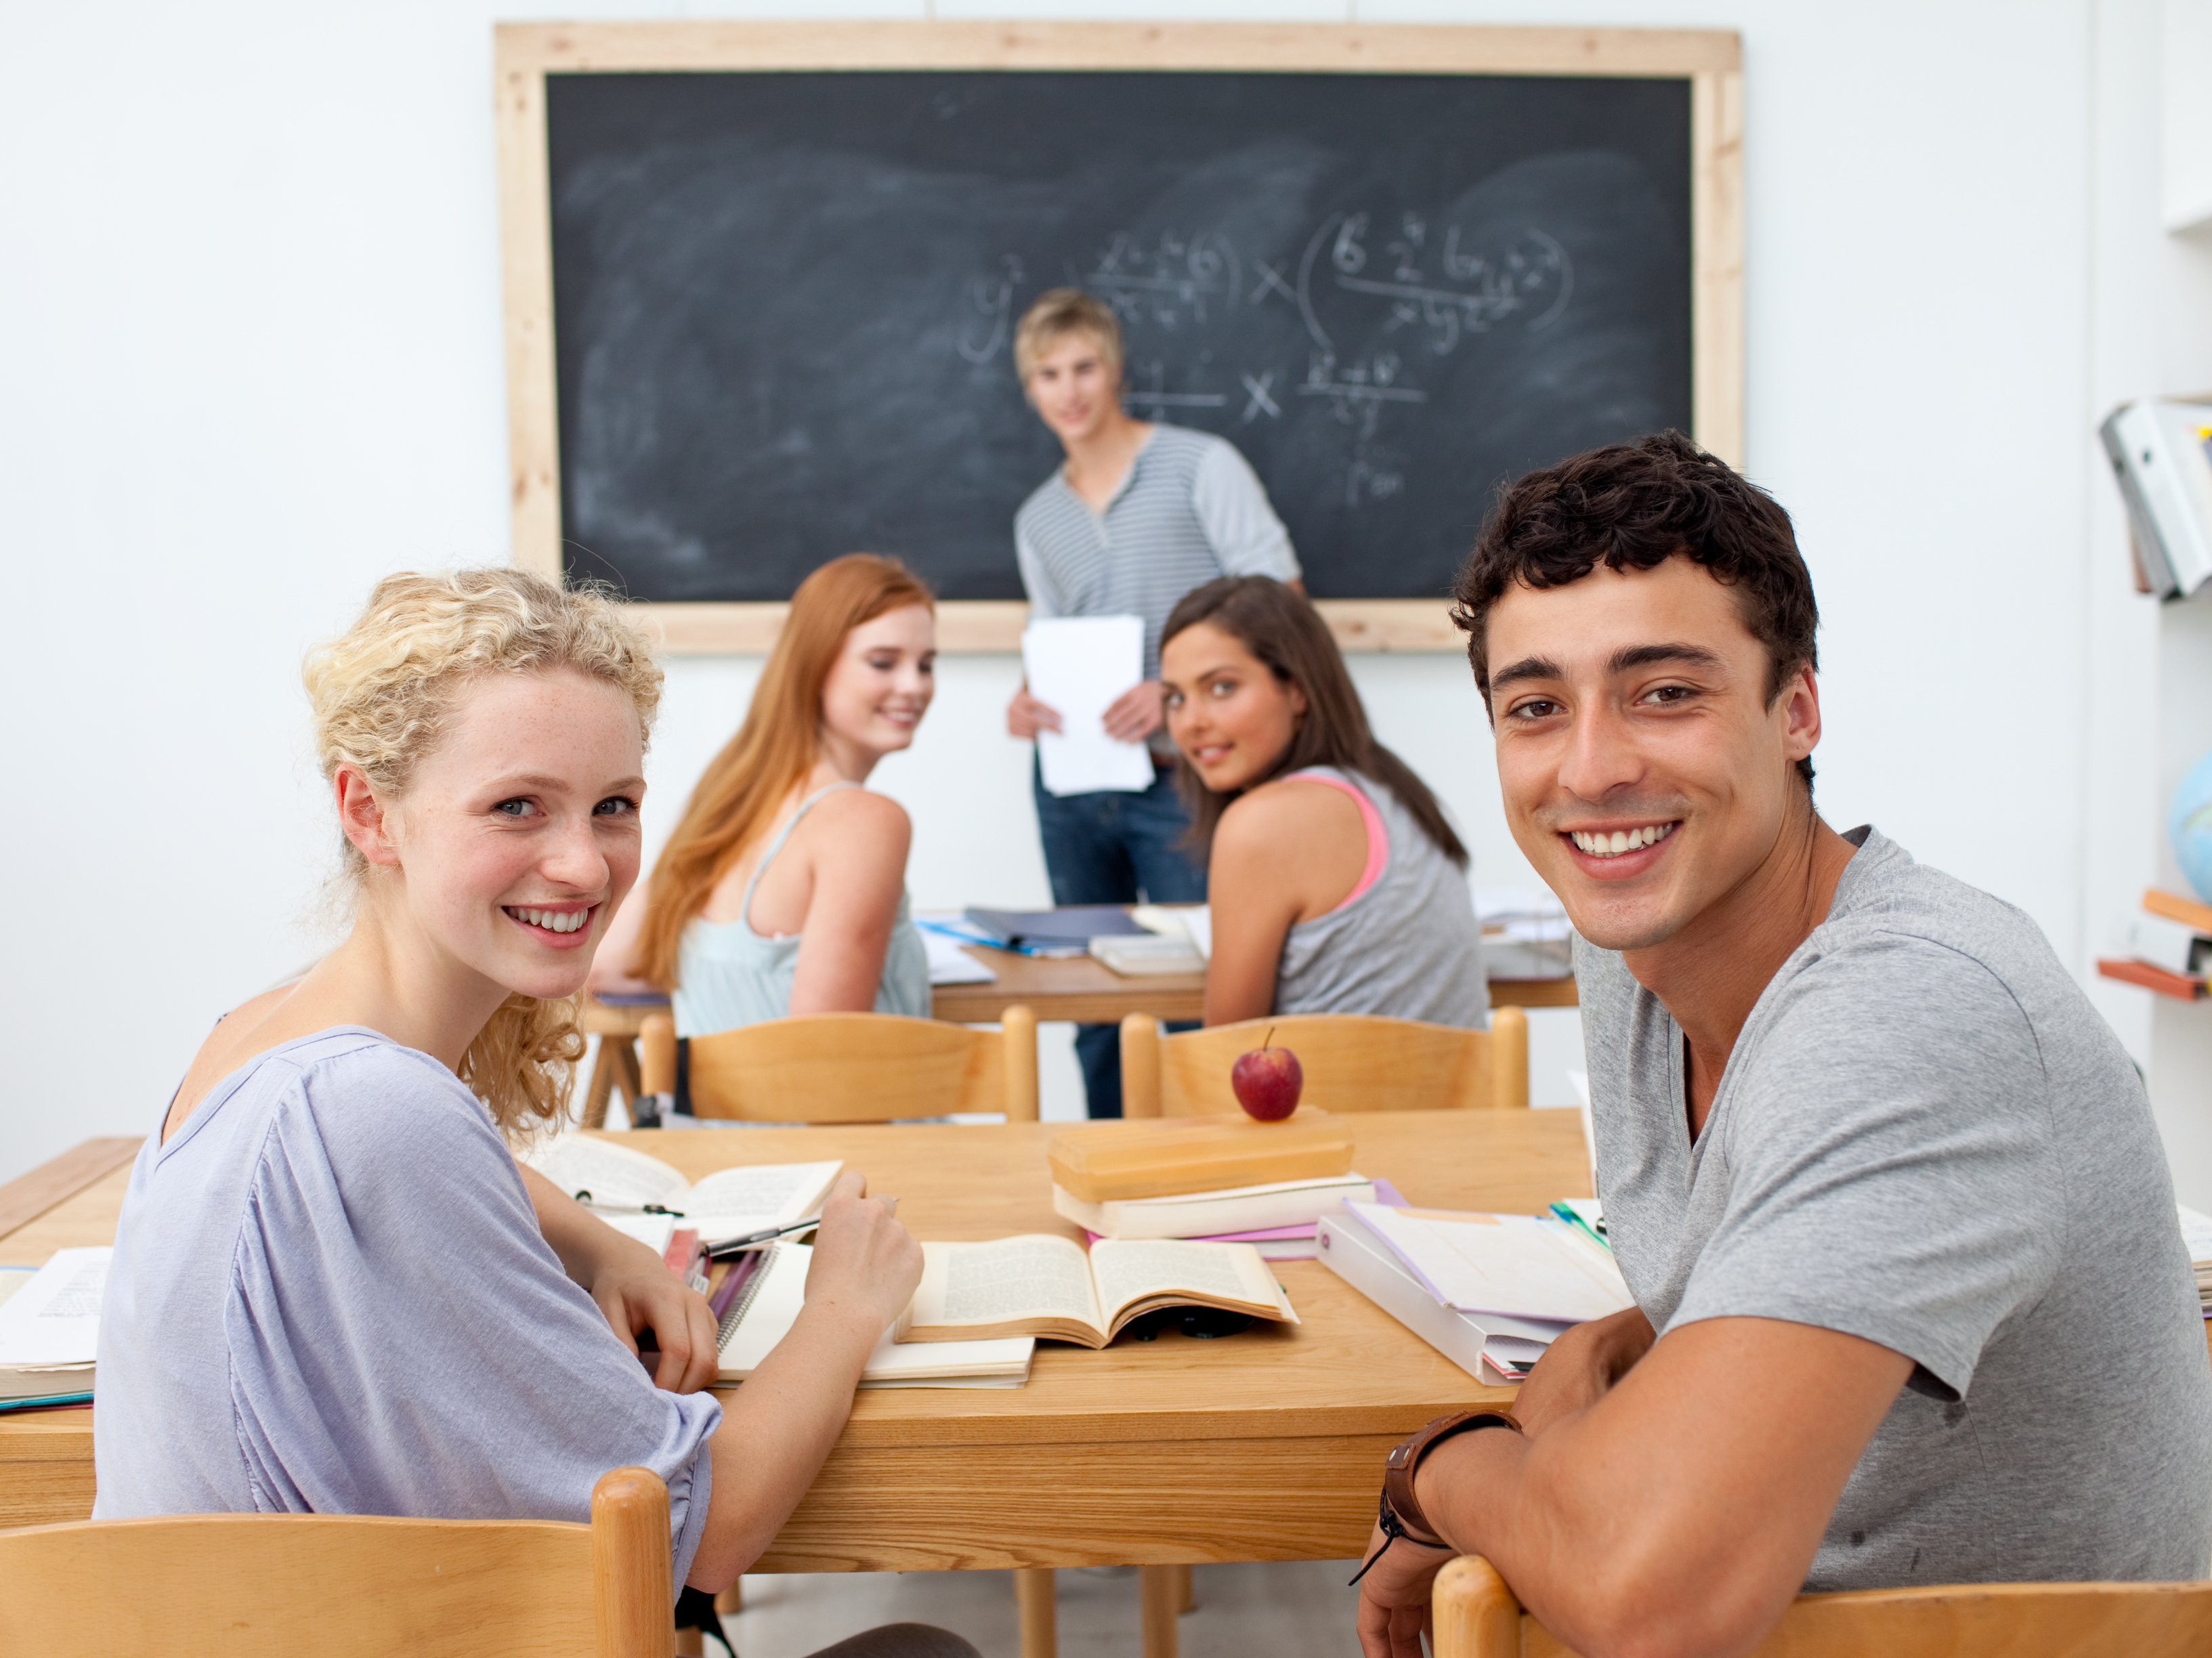 Studies on teens and college